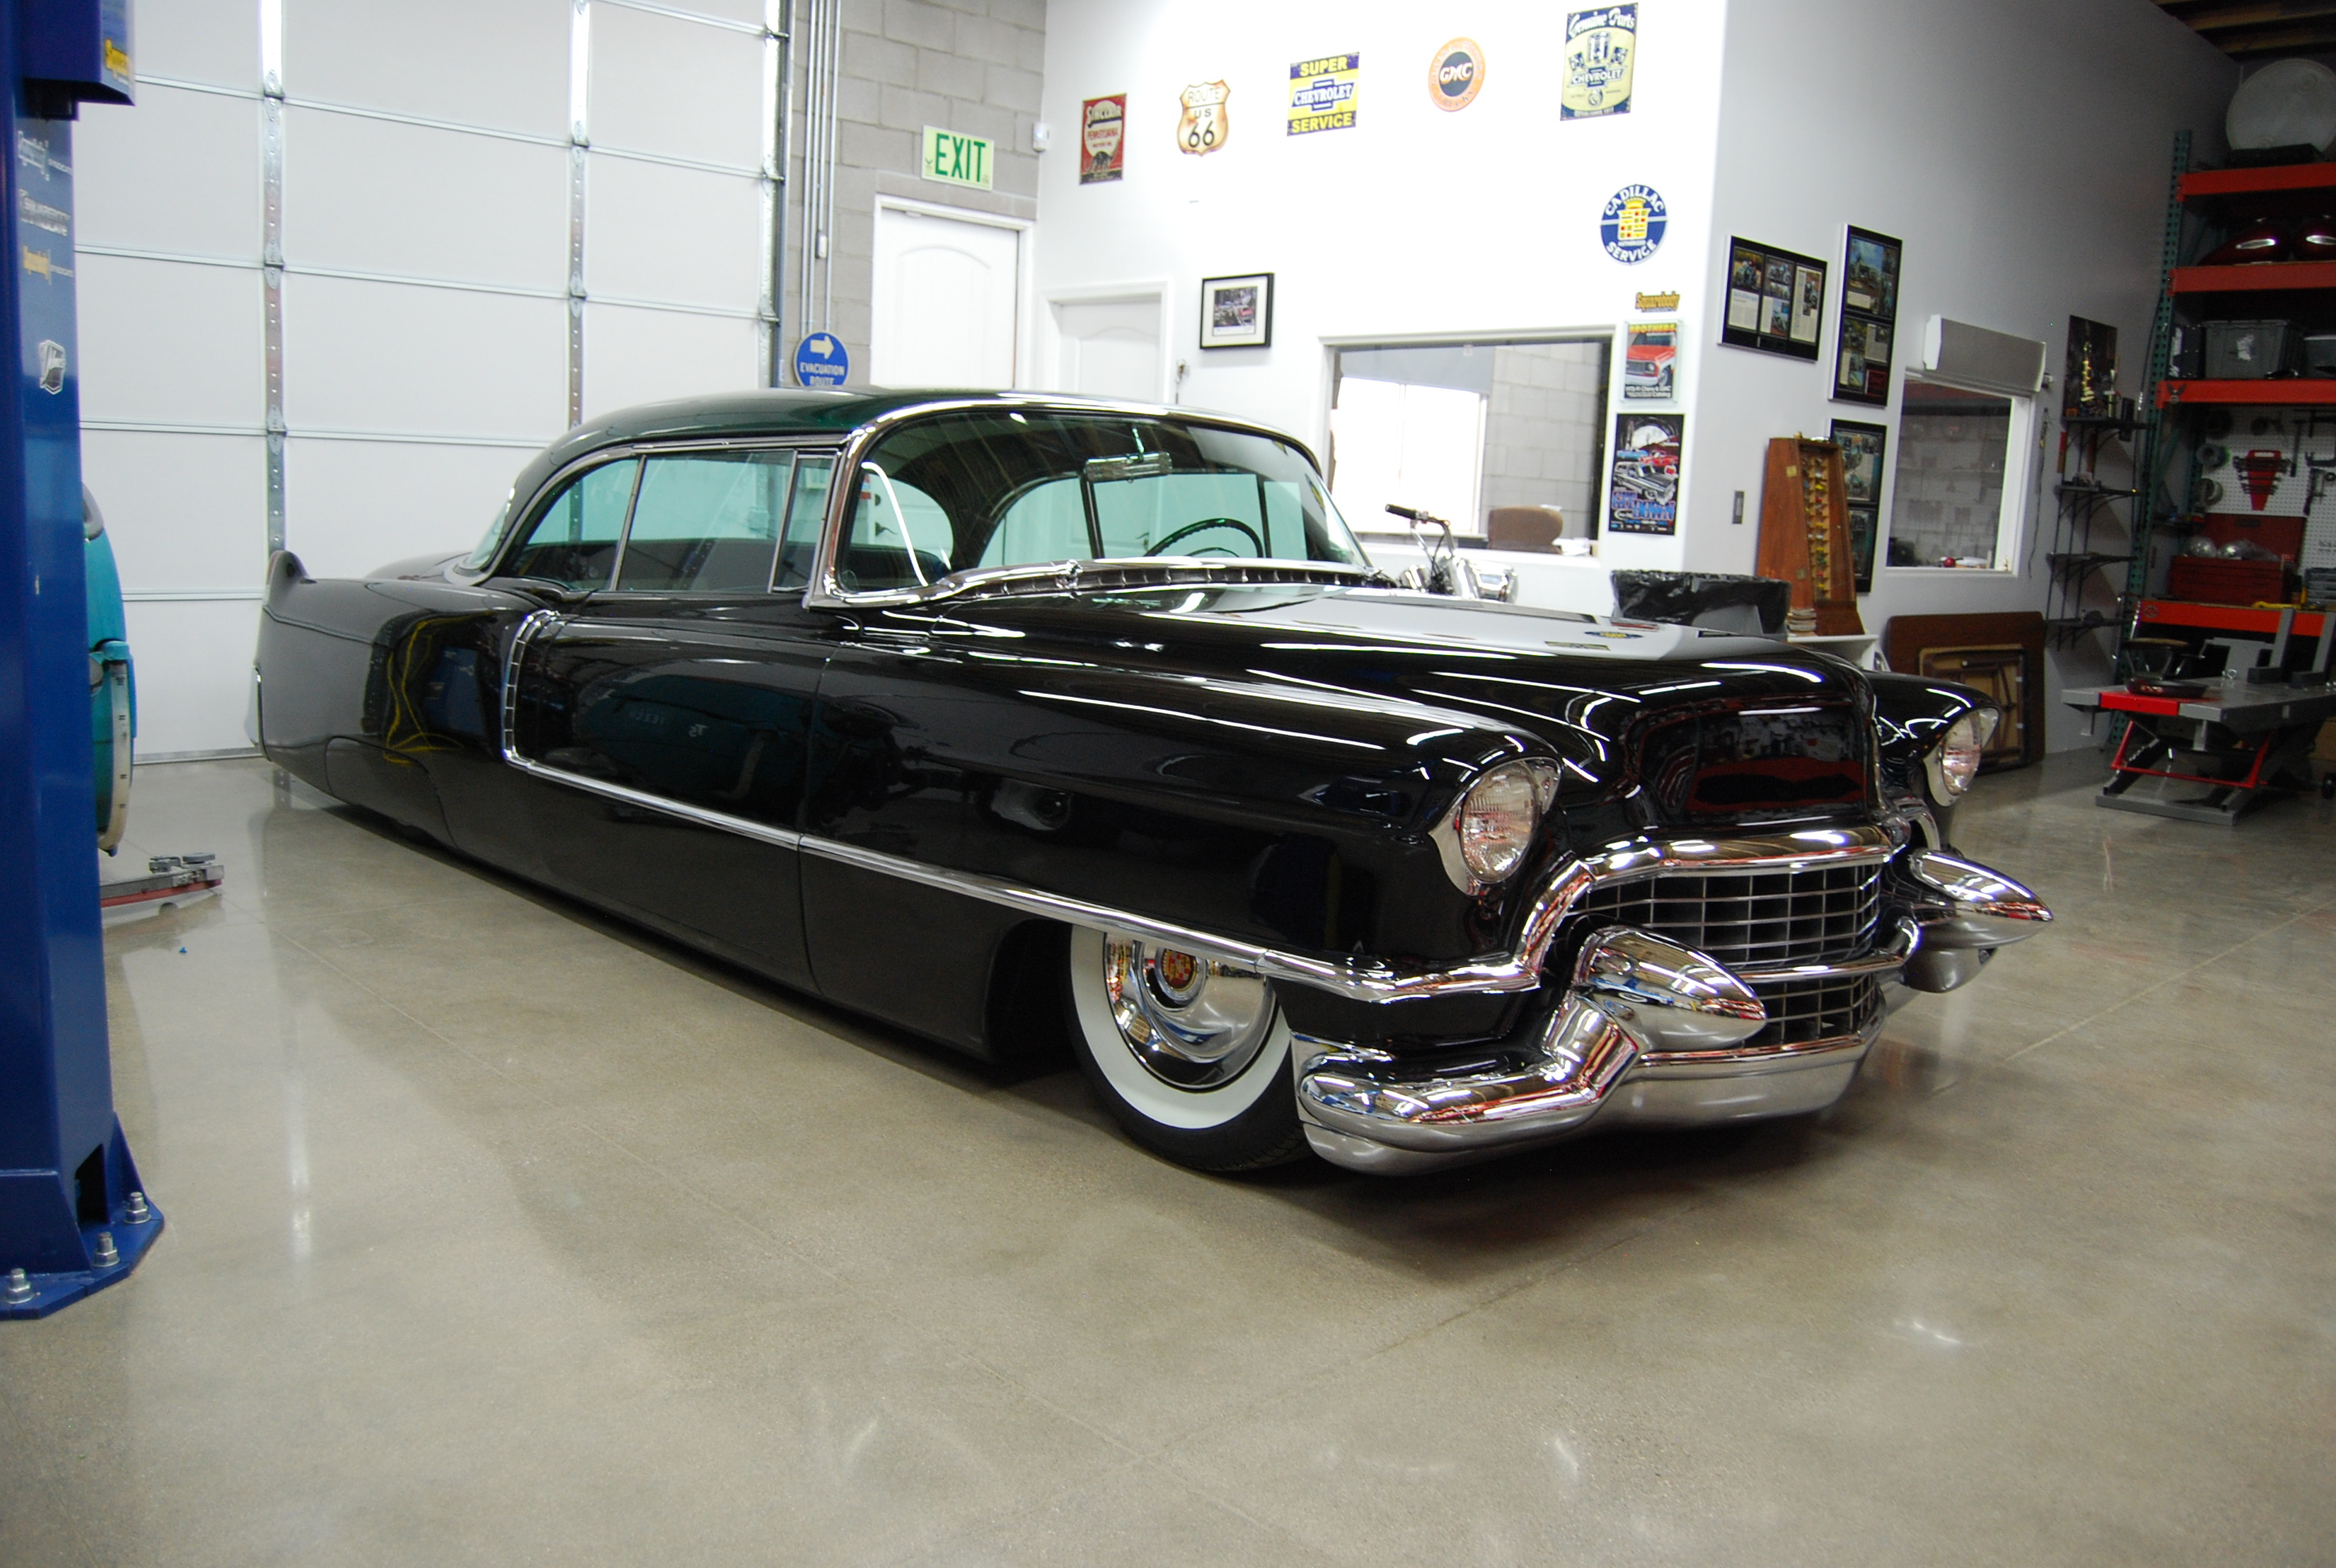 1955 Cadillac Kustom Coupe Hot Rod The H A M B